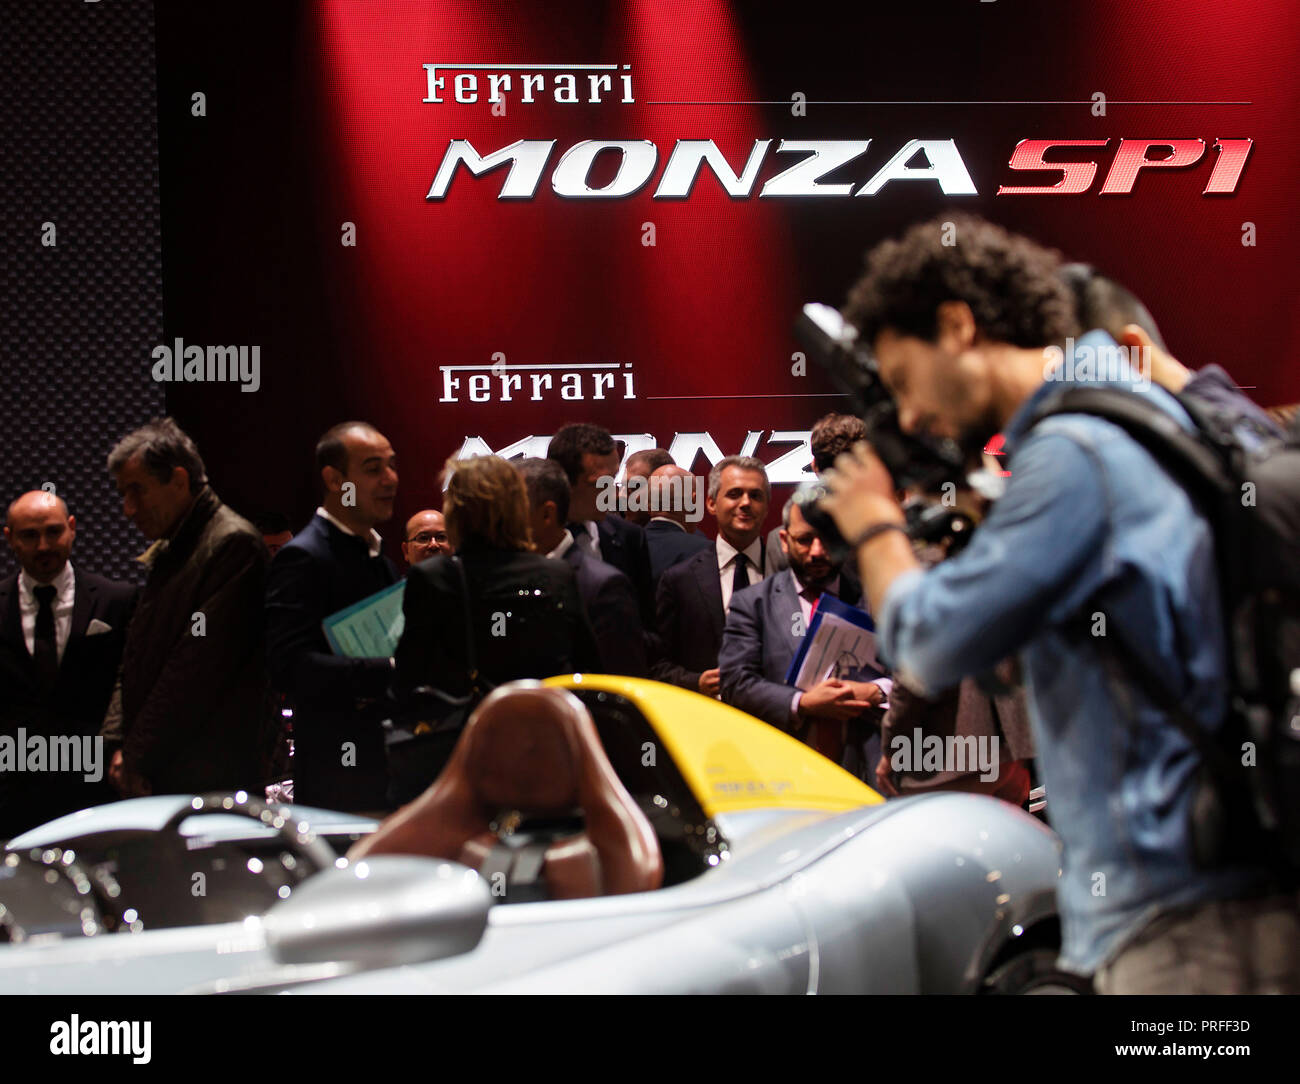 Italian carmaker Ferrari unveiled two new speedsters Ferrari SP1 and SP2 during the first day of International Paris Motorshow on Tuesday, October 2nd - Stock Image